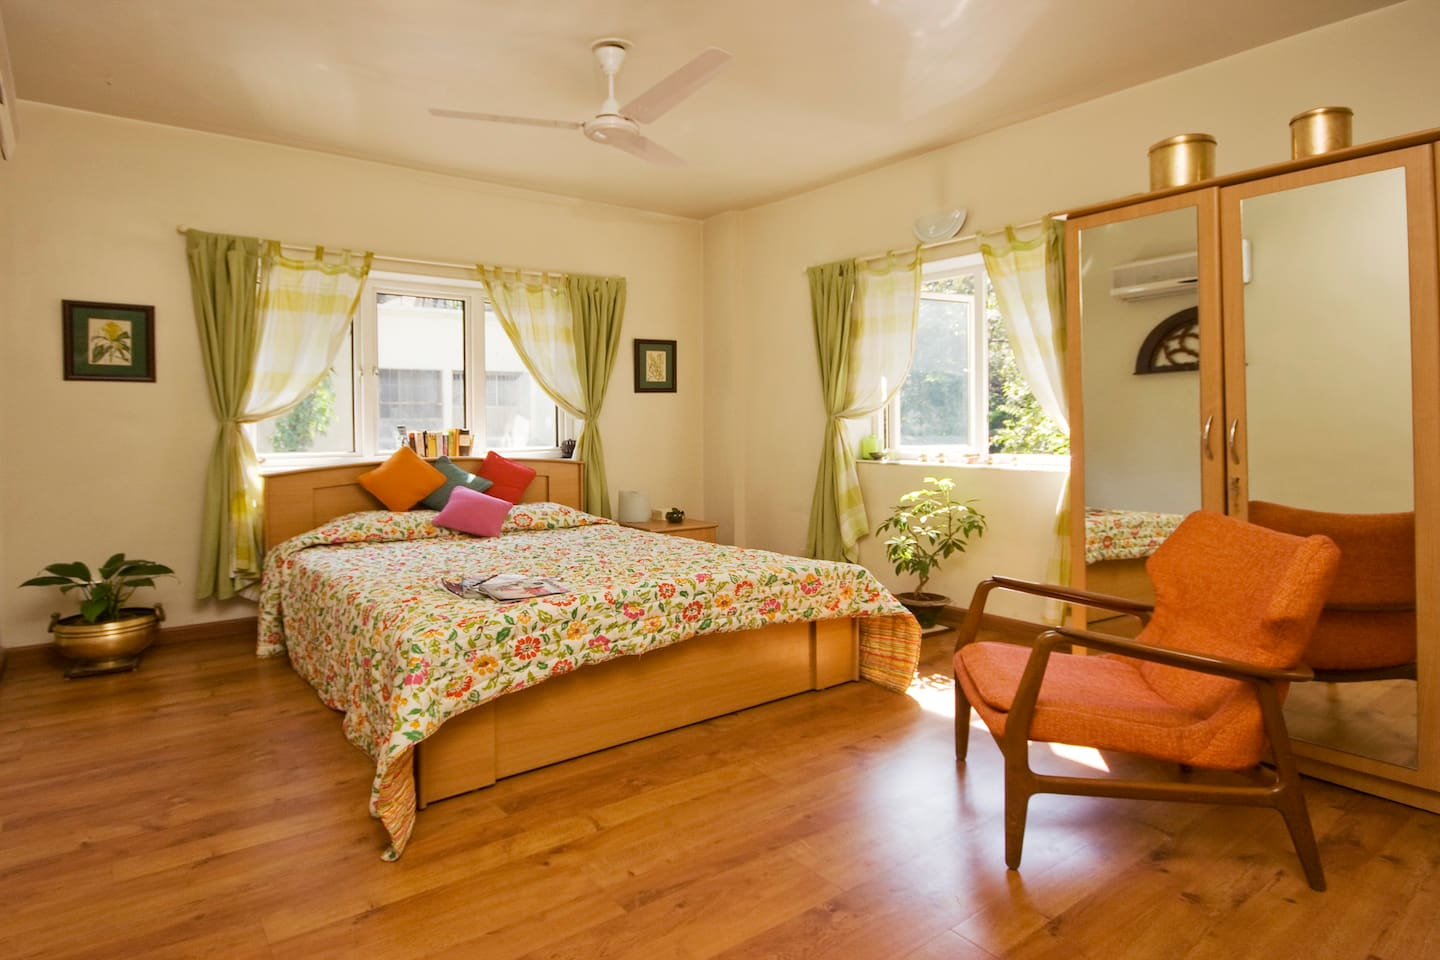 Sunny double bedroom, one of 4 rooms in our BnB homestay.